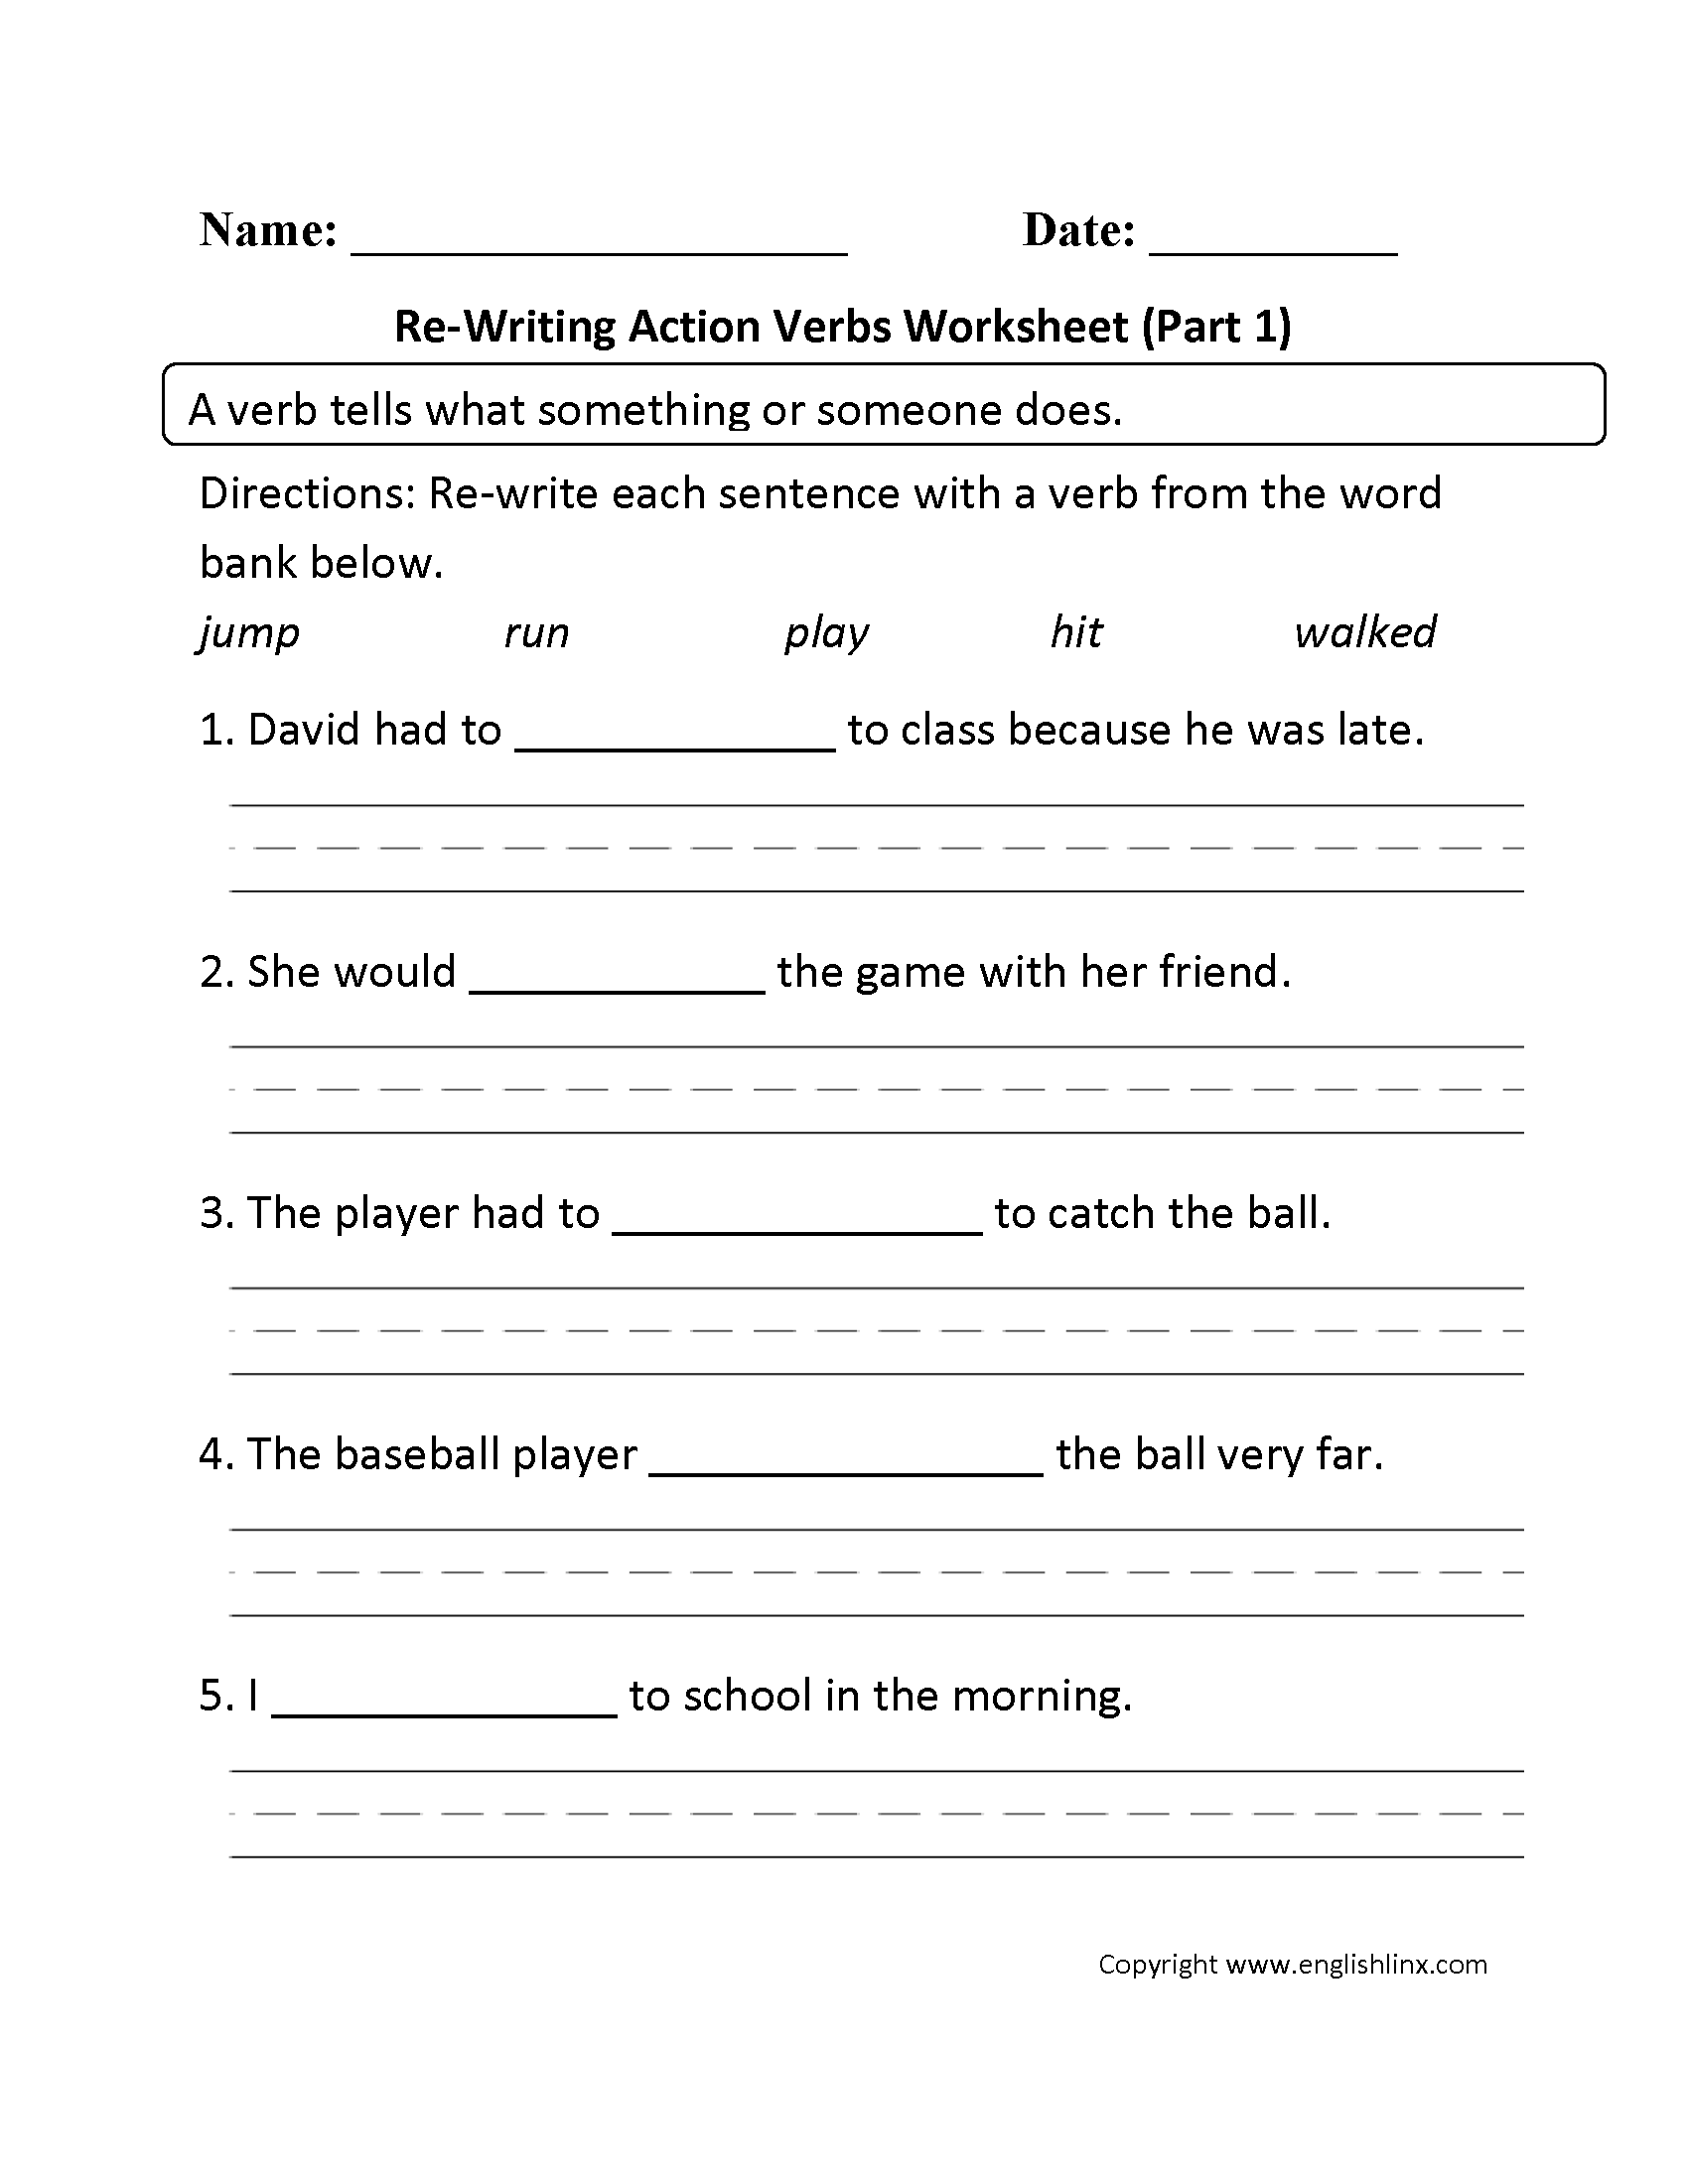 worksheet 8th Grade Writing Worksheets verbs worksheets action re writing worksheet